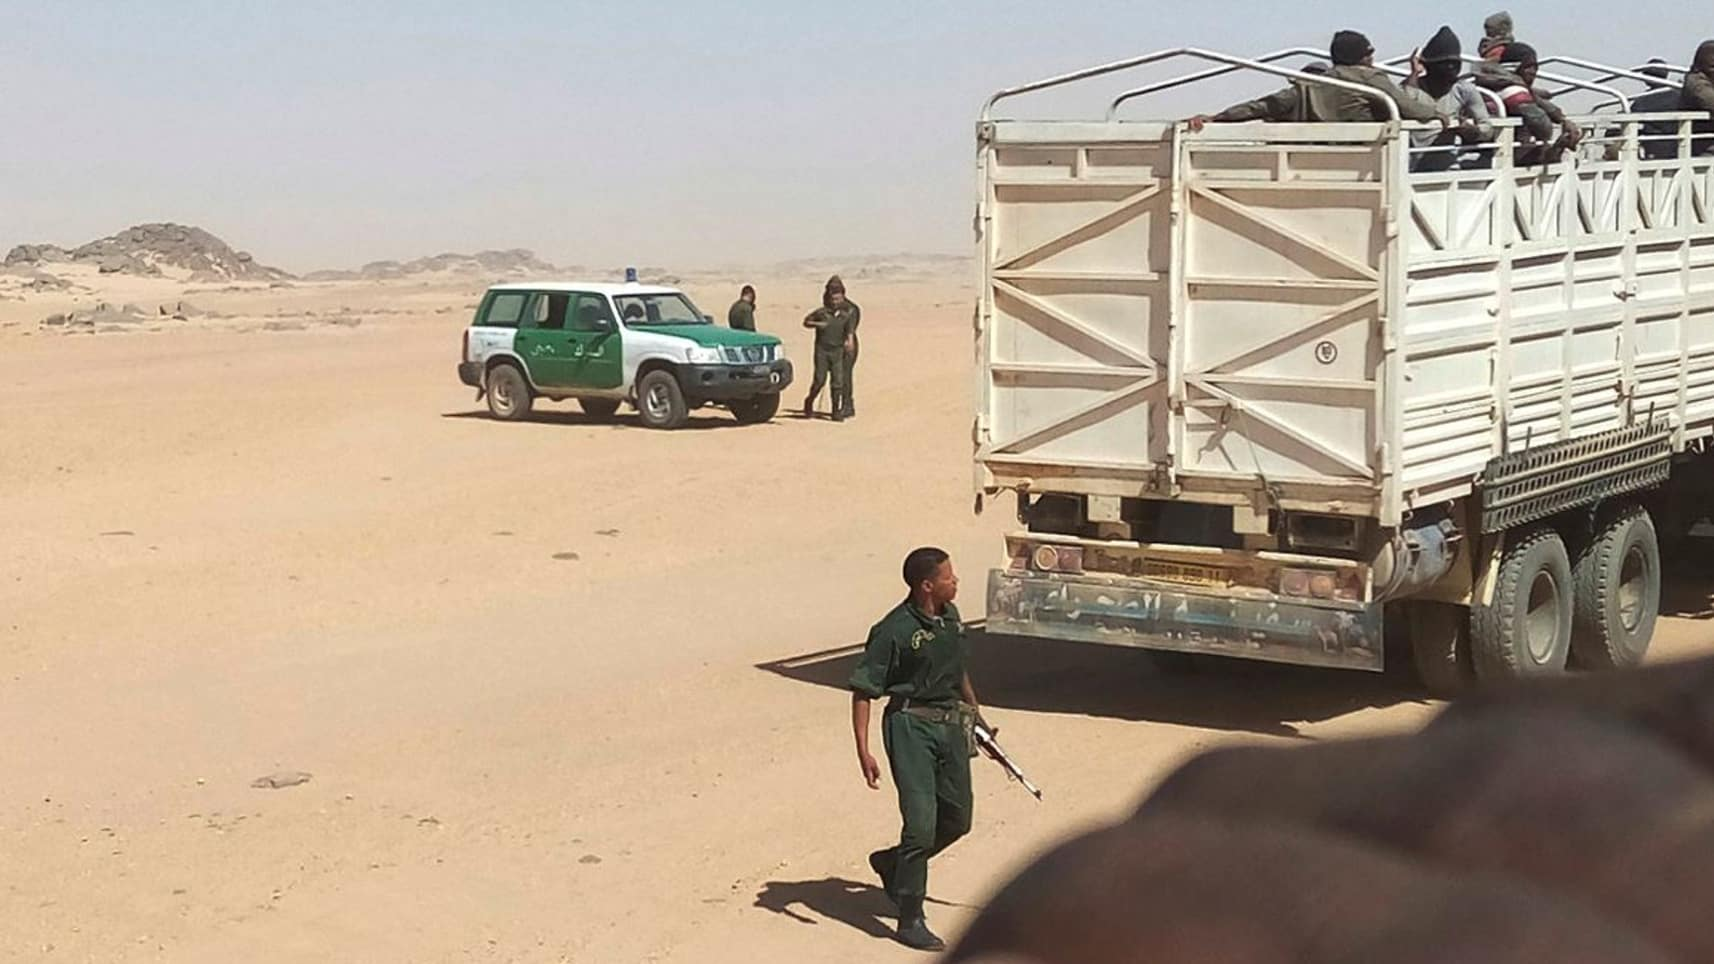 Walk or Die: Algeria Forces 13,000 Migrants Into the Sahara Desert